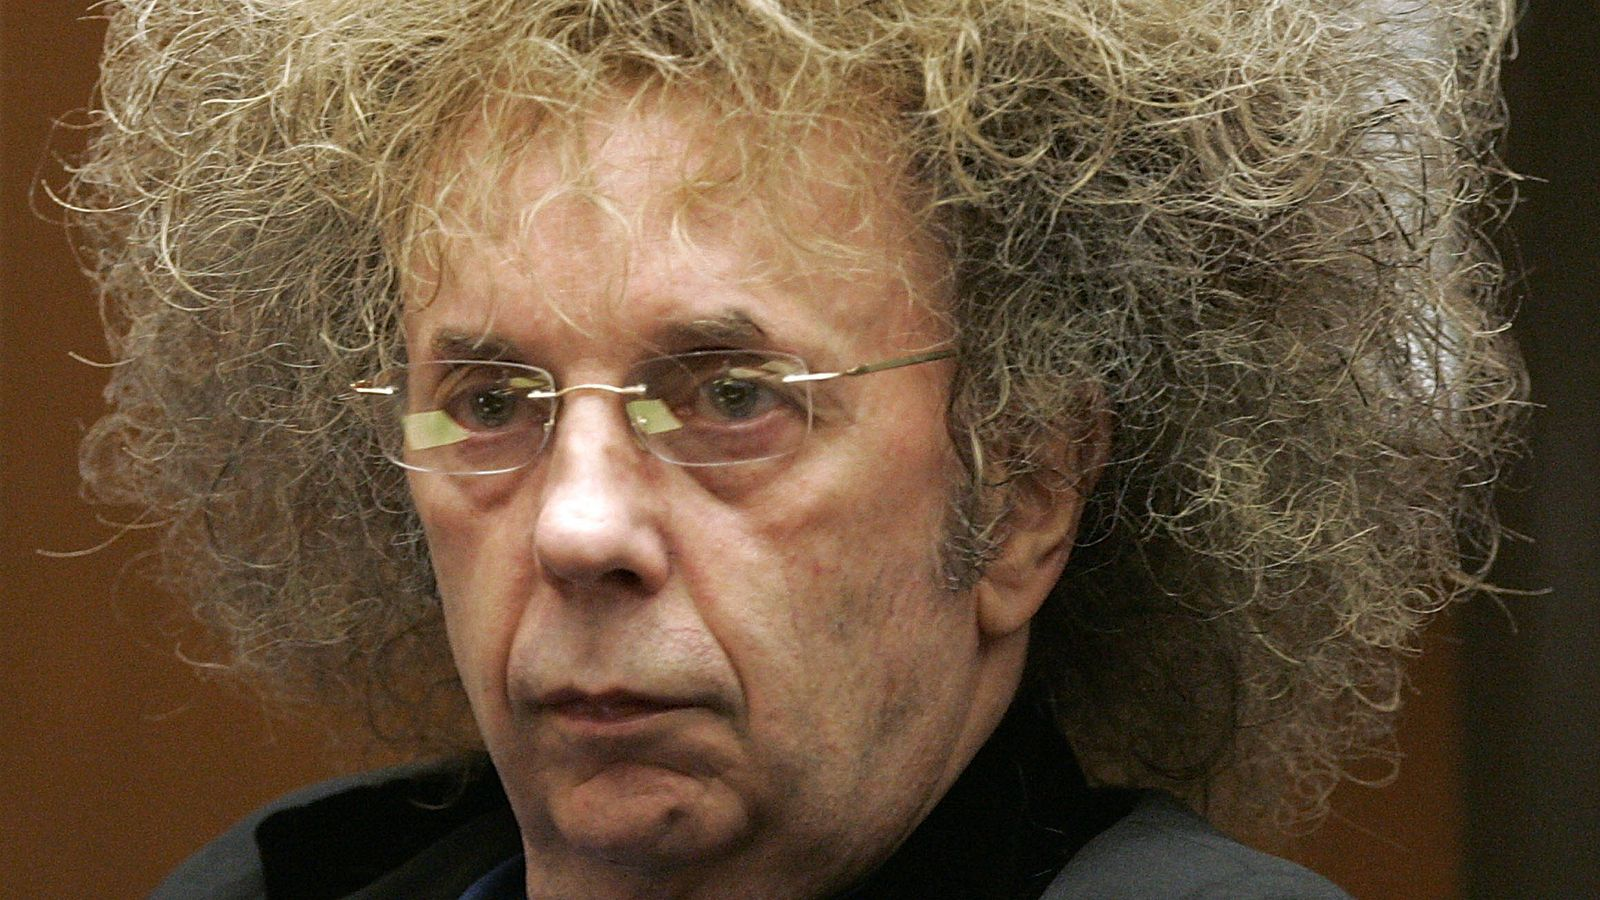 Phil Spector: Ex-music producer and convicted killer dies | Ents & Arts News